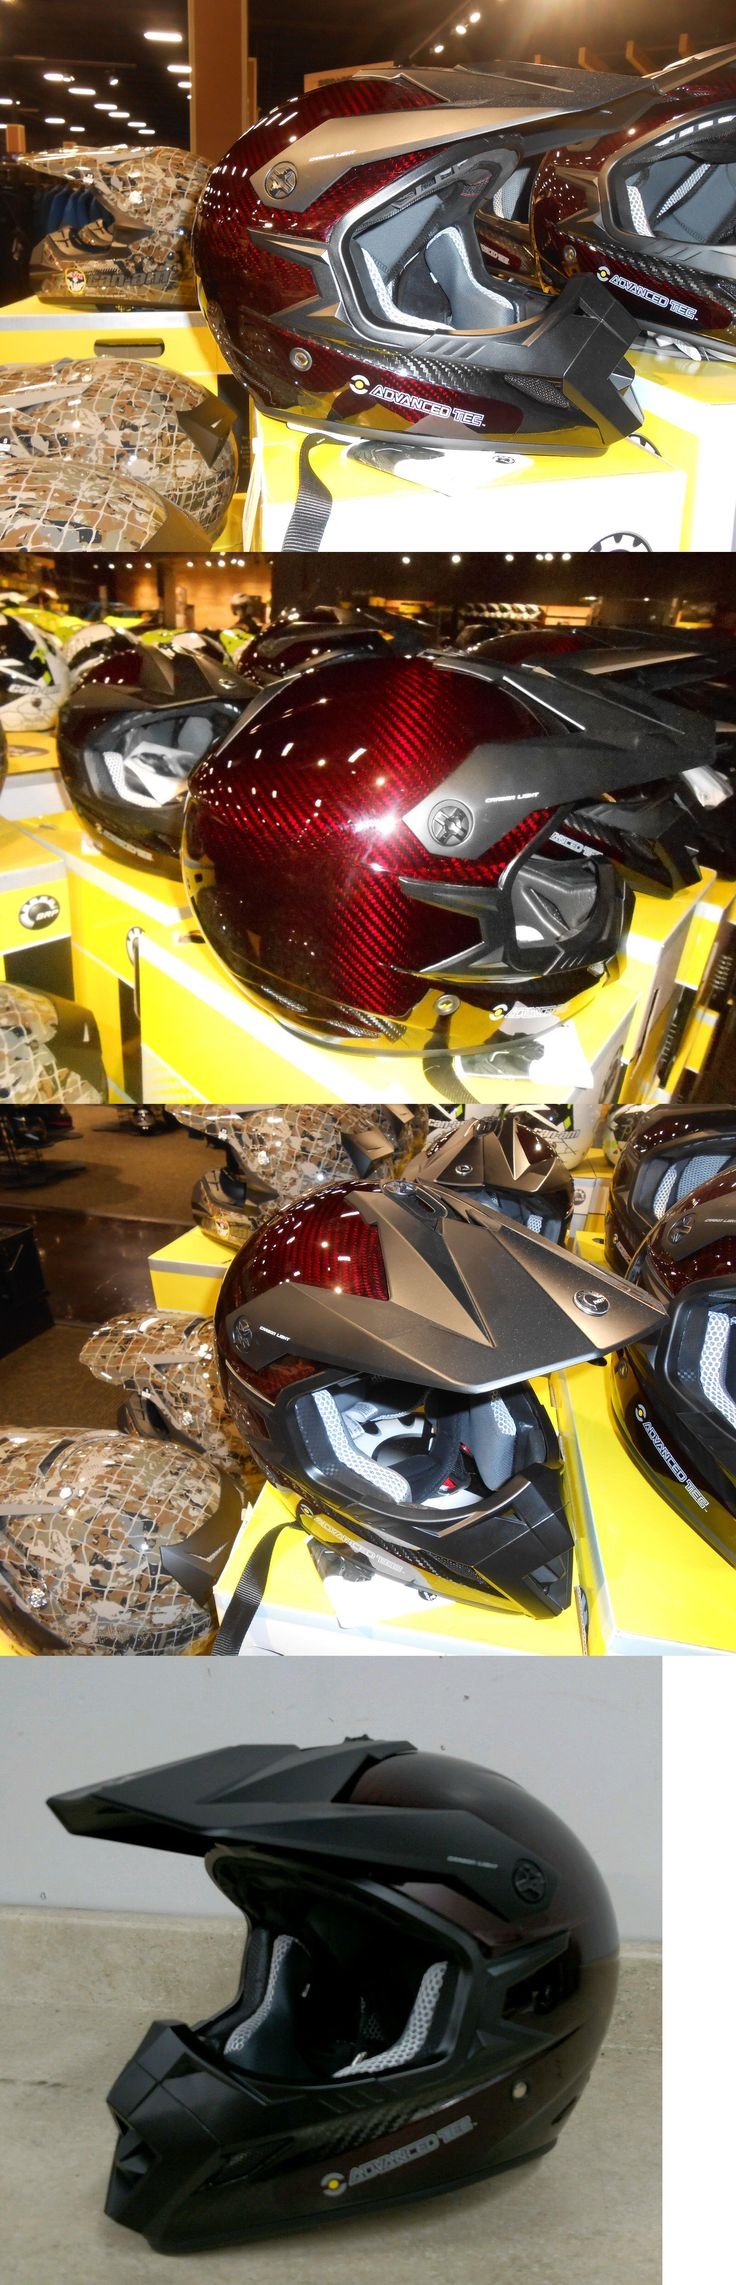 Other Winter Sport Clothing 16060: Can Am Ski Doo Xp-R2 Carbon Light Blaze Helmet - 4476570692 #4476571492 Sale -> BUY IT NOW ONLY: $150.0 on eBay!